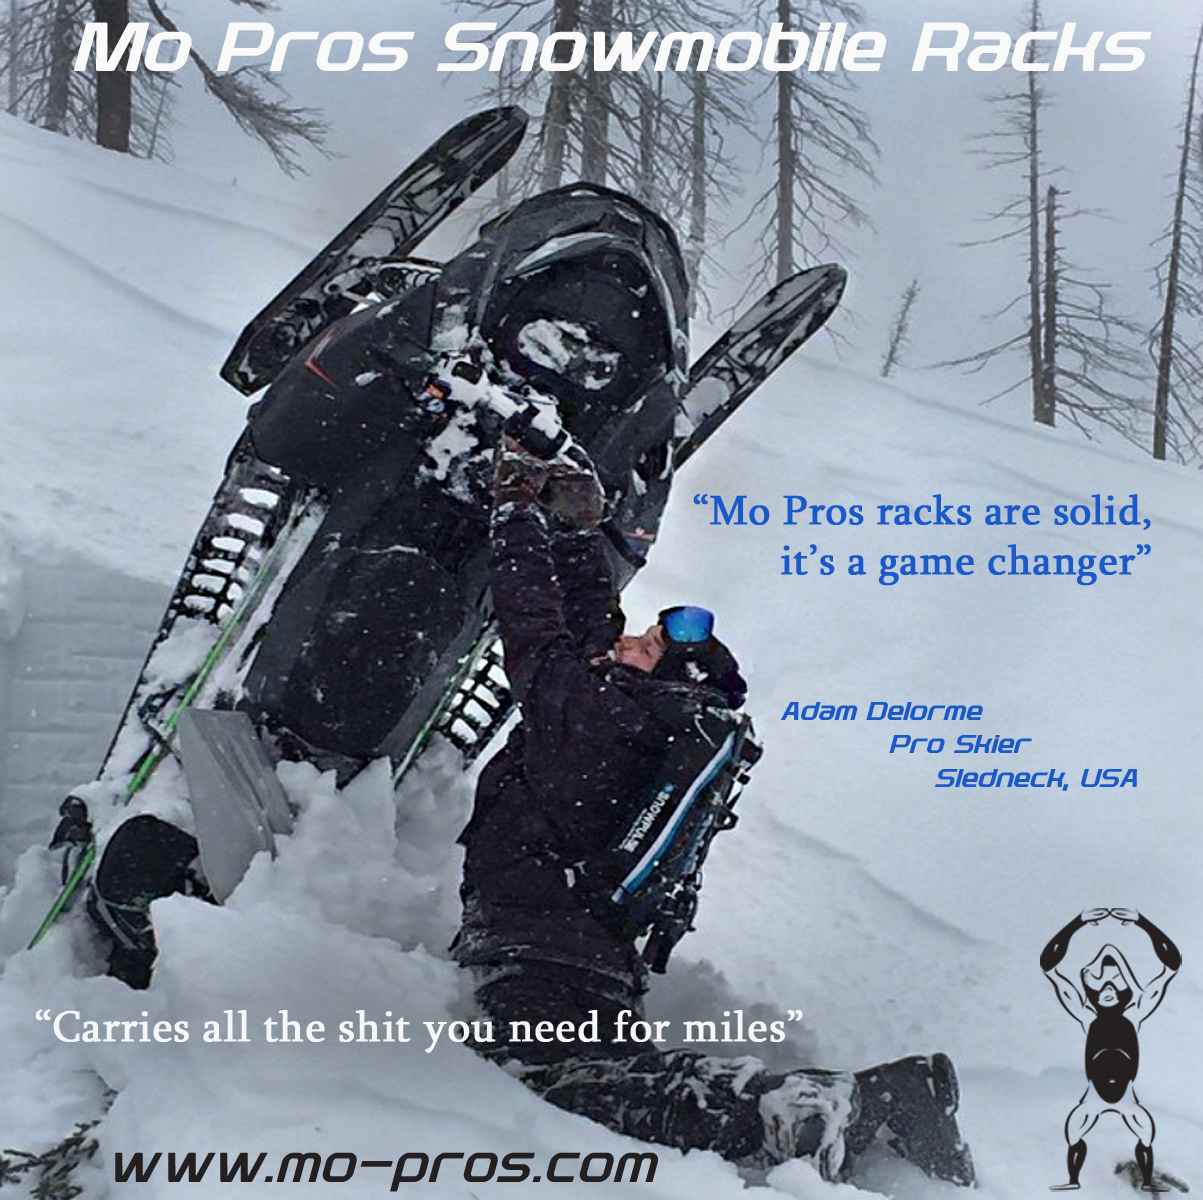 The Mo Pros Snowmobile Rack is competitive because it changes into a snowmobile ski rack and snowmobile snowboard rack.Polaris snowmobile integration is simple, but Ski-Doo is also well accommodated as we live in a very backcountry united atmosphere,including cheetah factory racing.